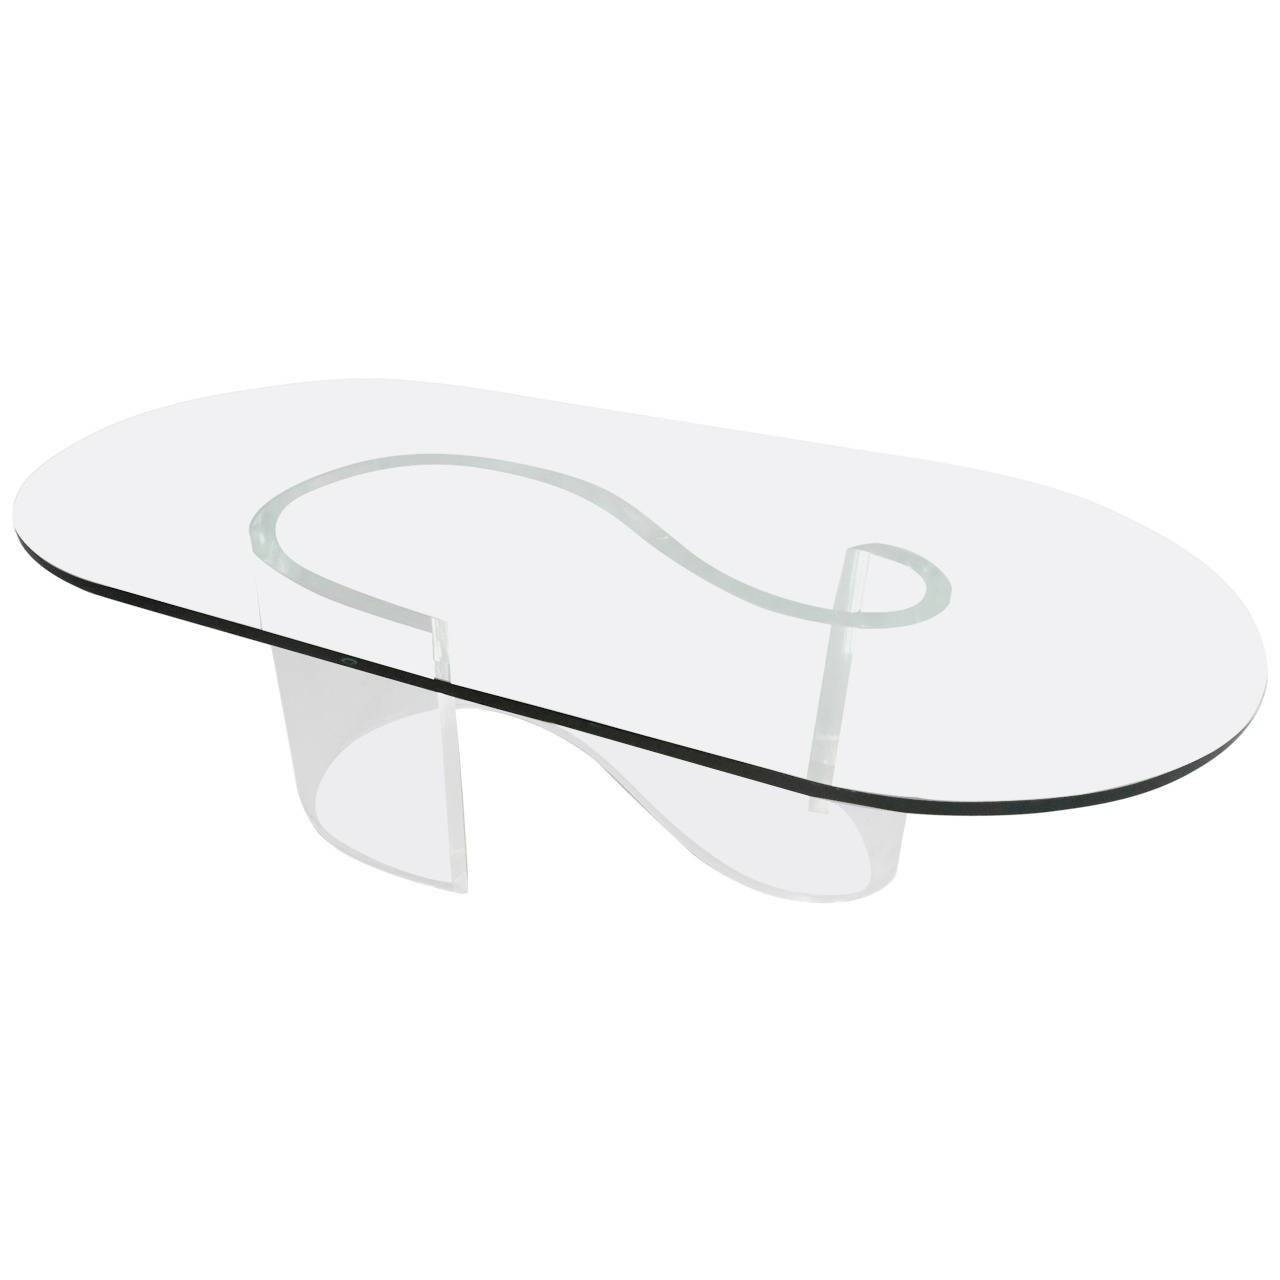 Mid-Century Modern S-Shape Lucite Coffee Table With Beveled Glass intended for Coffee Tables With Oval Shape (Image 18 of 30)